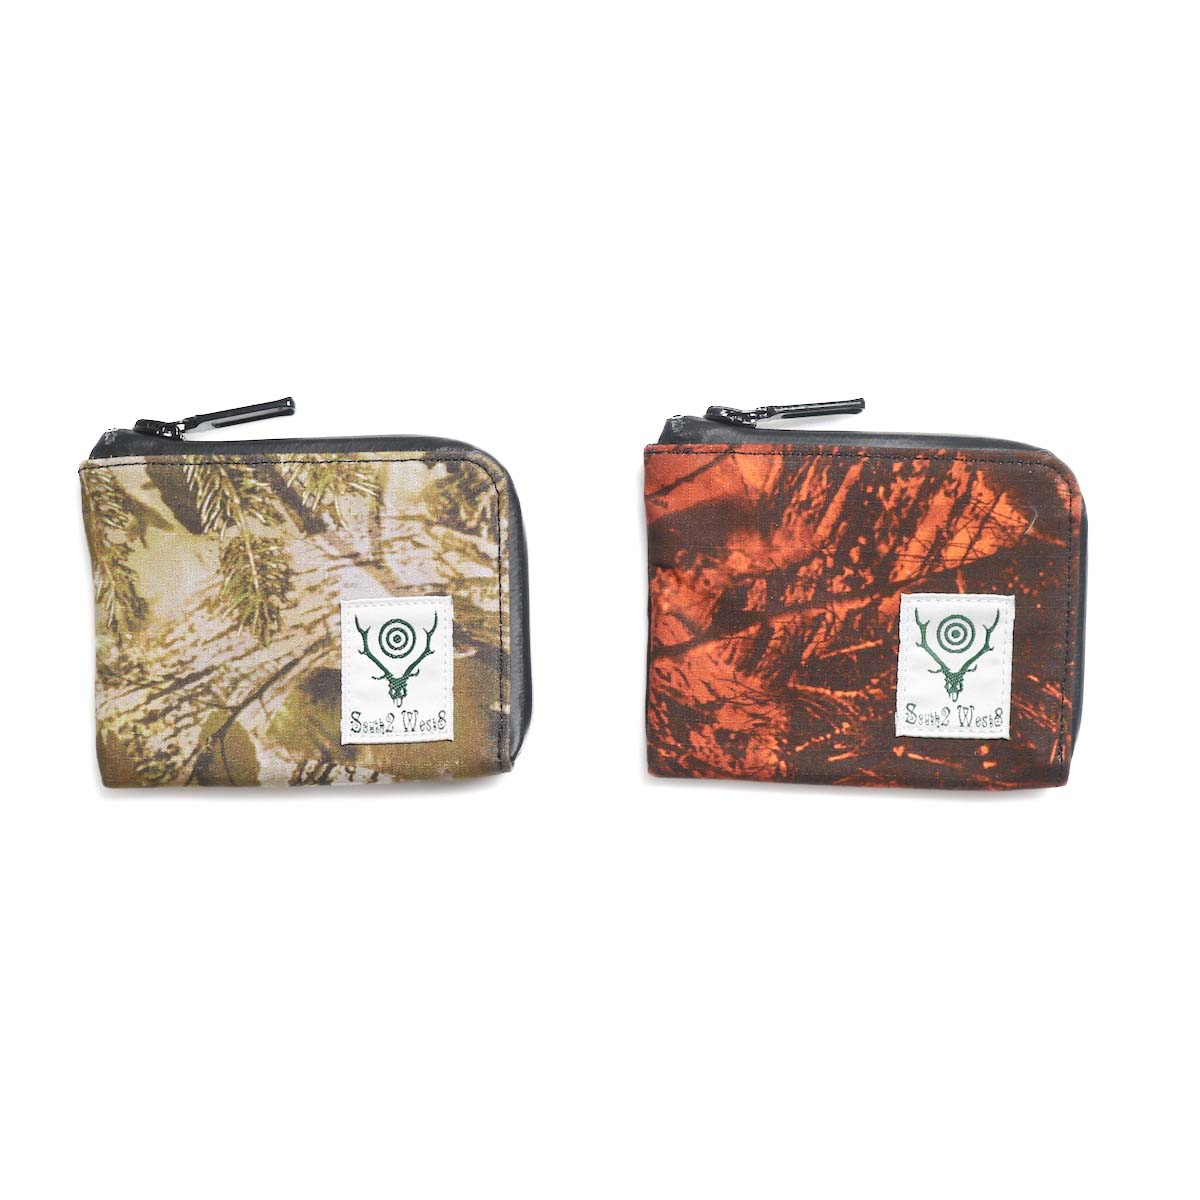 SOUTH2 WEST8 / Coin Case -S2W8 Camo / Water Proof